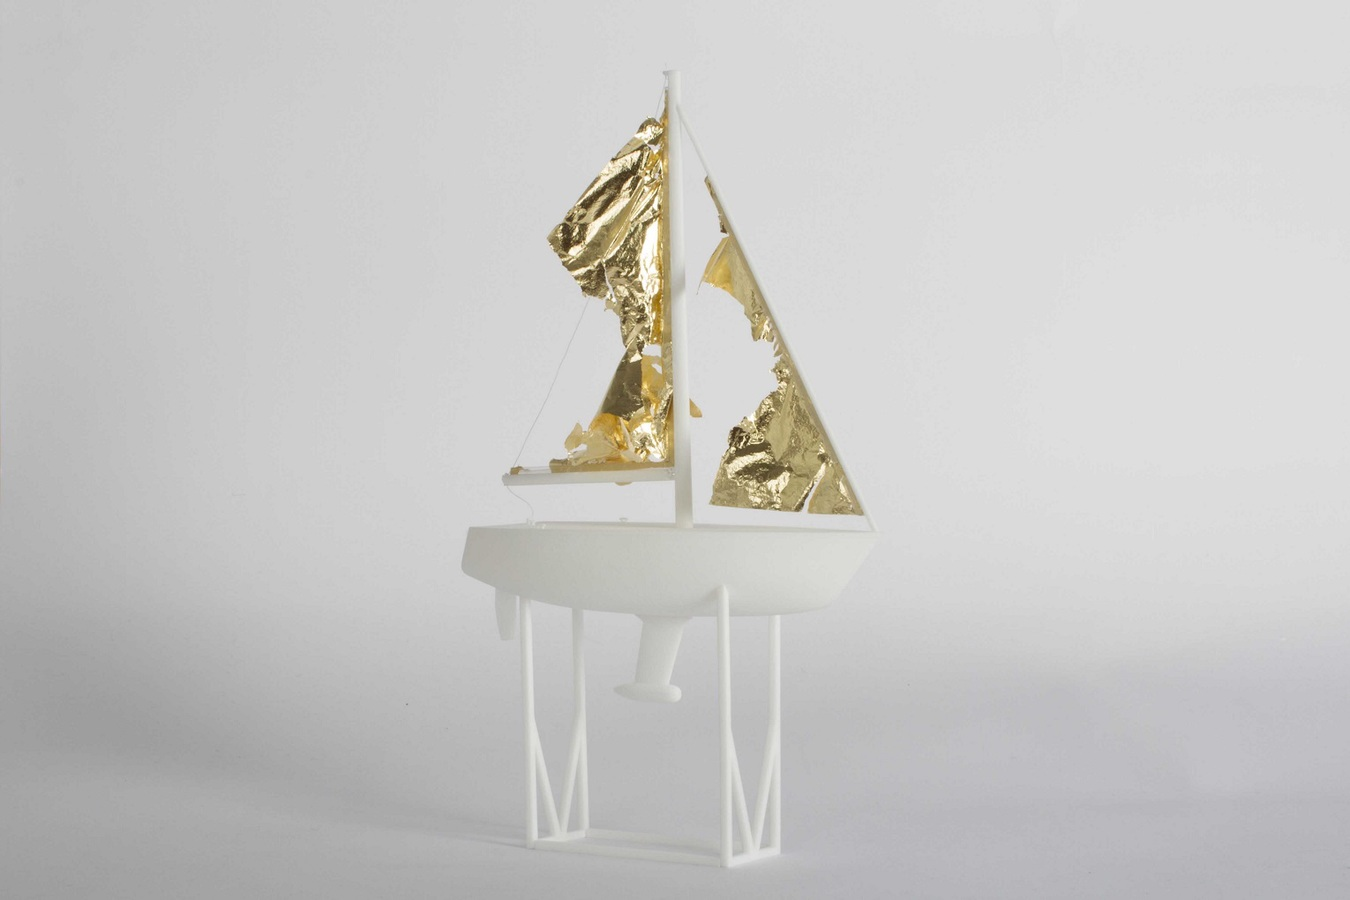 Art Masters This Month Come Di Meglio, Windward, 30x17x6cm, 3D print, gold leaf, white thread, 2014